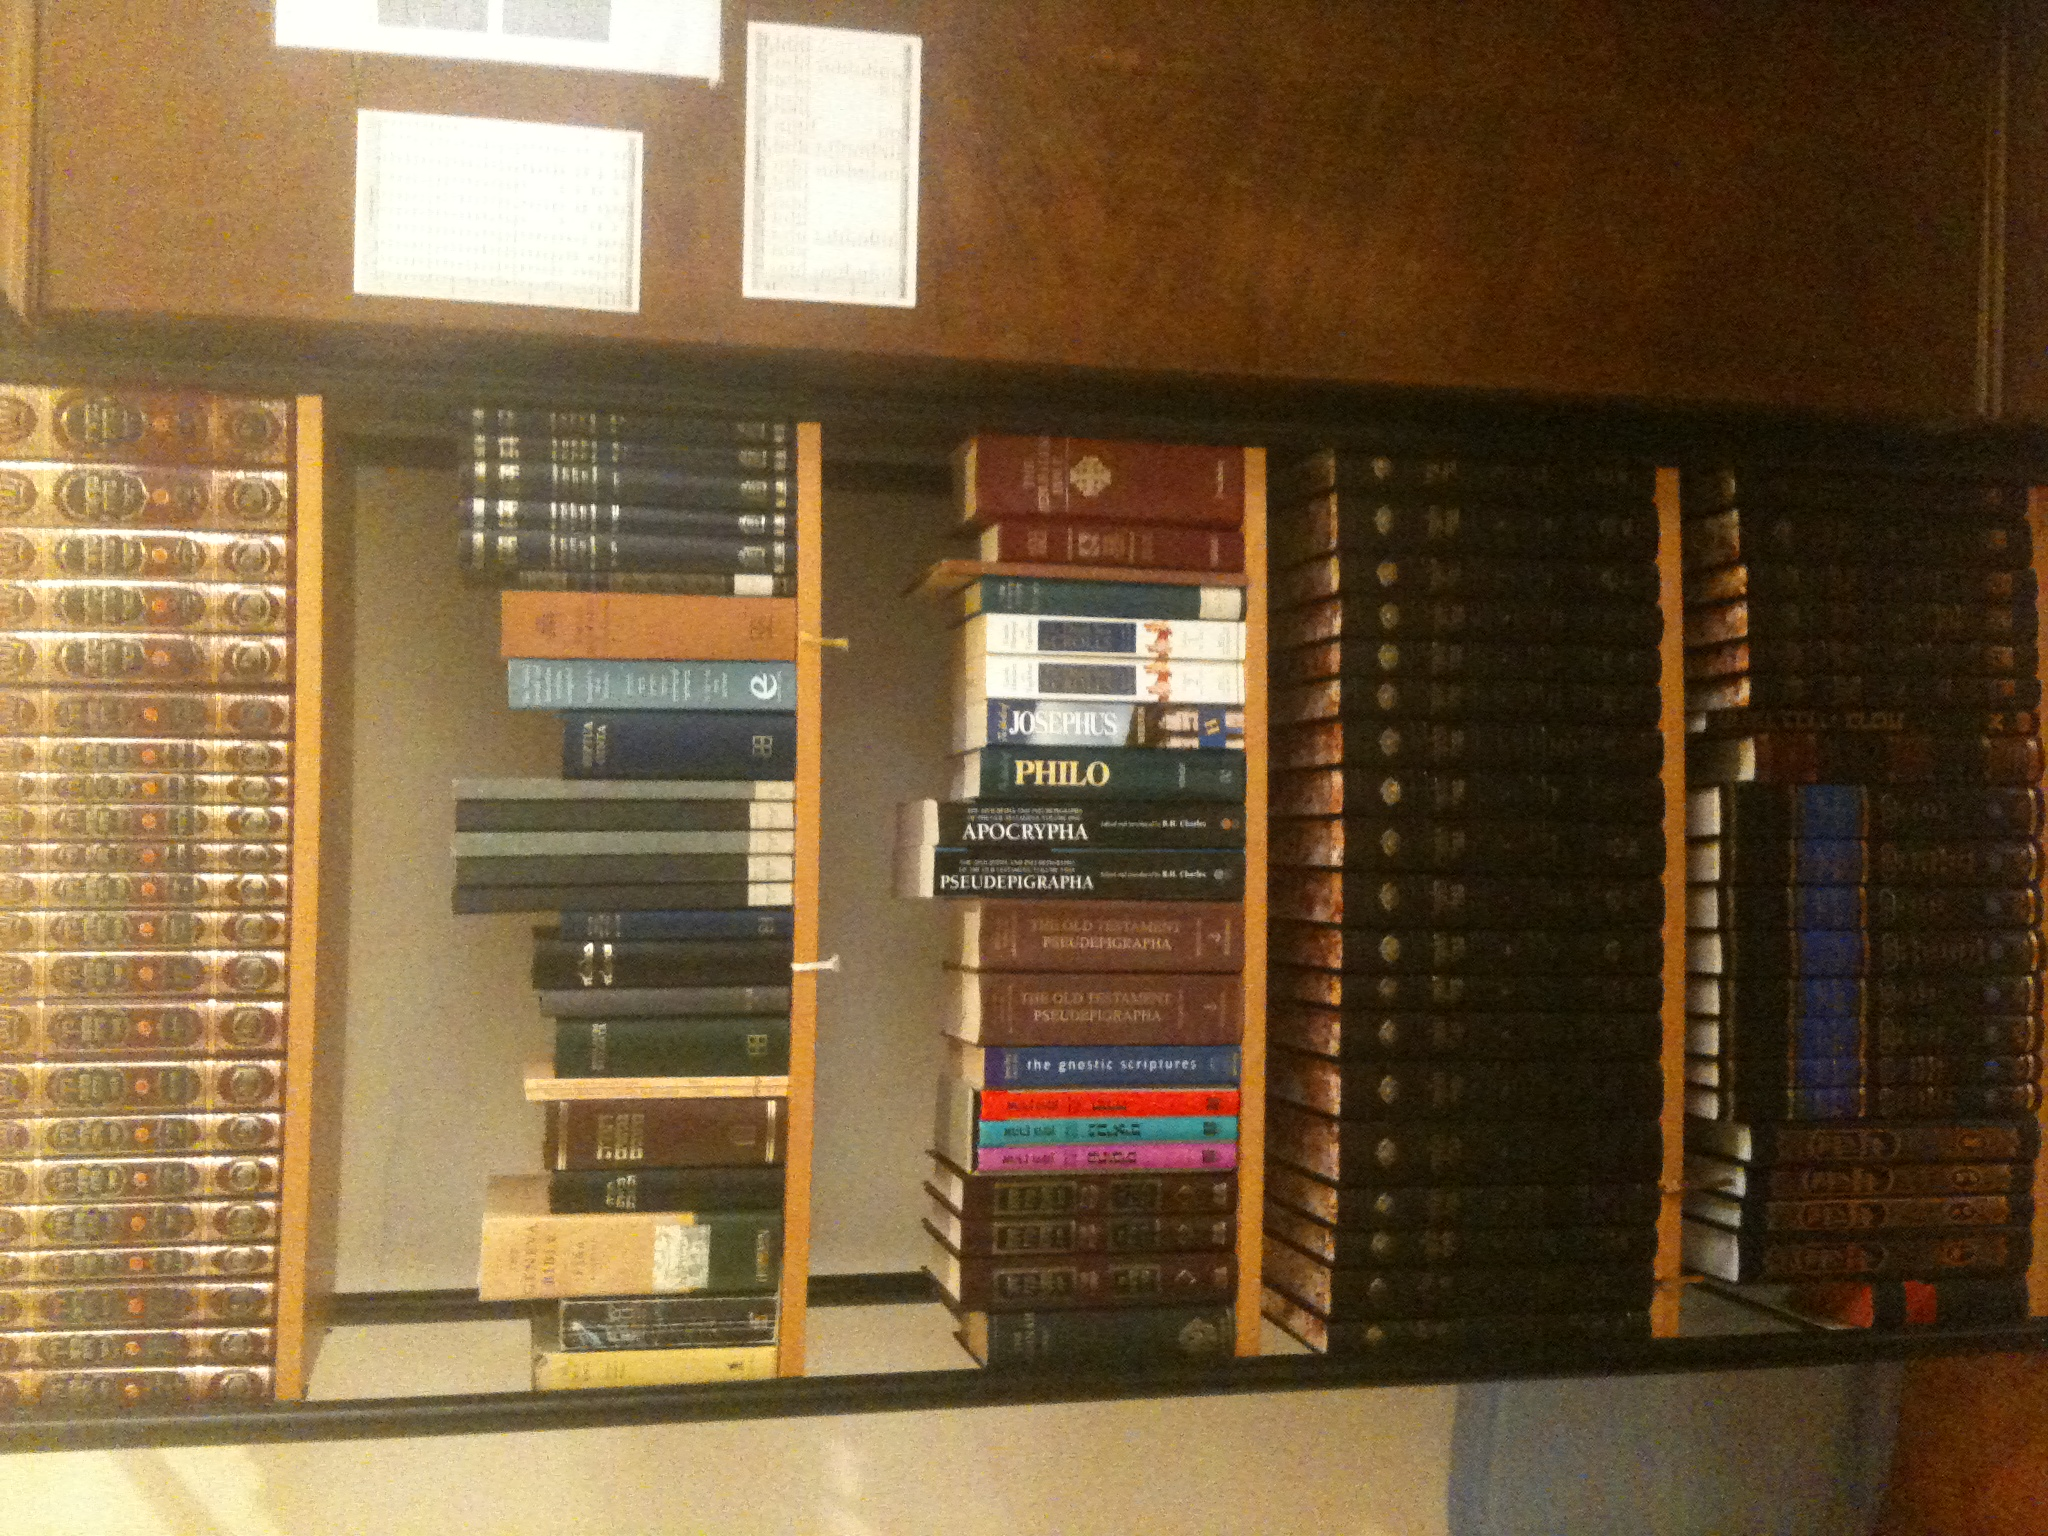 Ah, Now We're Talking! This Is My Primary Literature Shelf #1 It Houses  Various Copies Of The Hebrew Bible (most Notably Miqra'ot Gedolot, Torat  Hayyim And